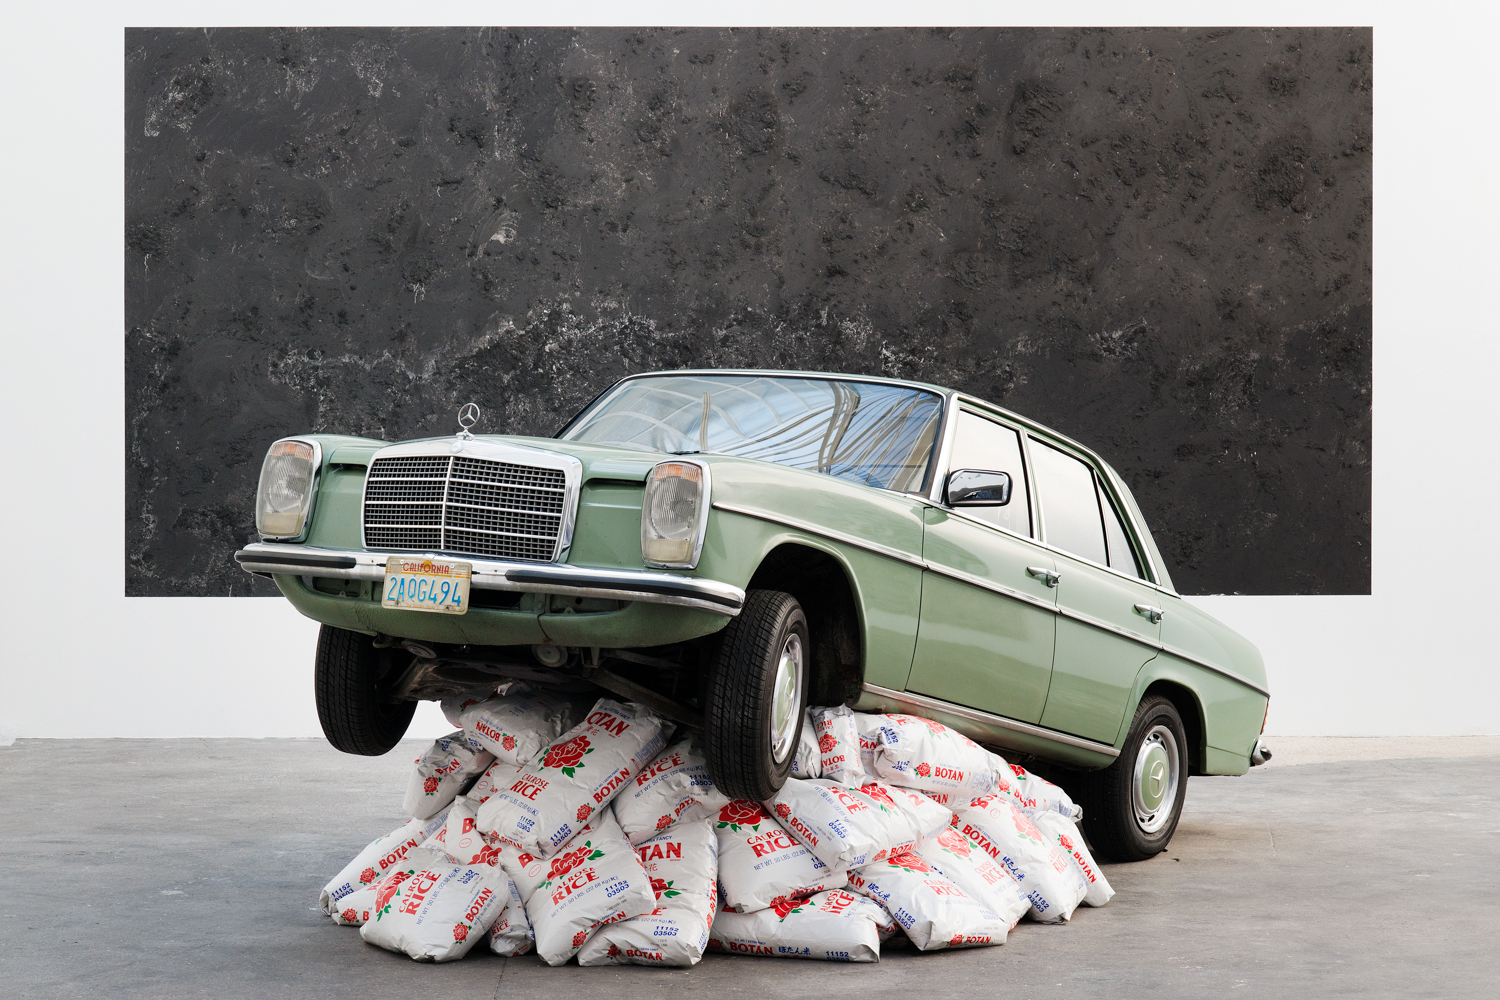 Nick Darmstaedter Rice Rocket 2013 Car on rice 197 x 165 x 71 inches